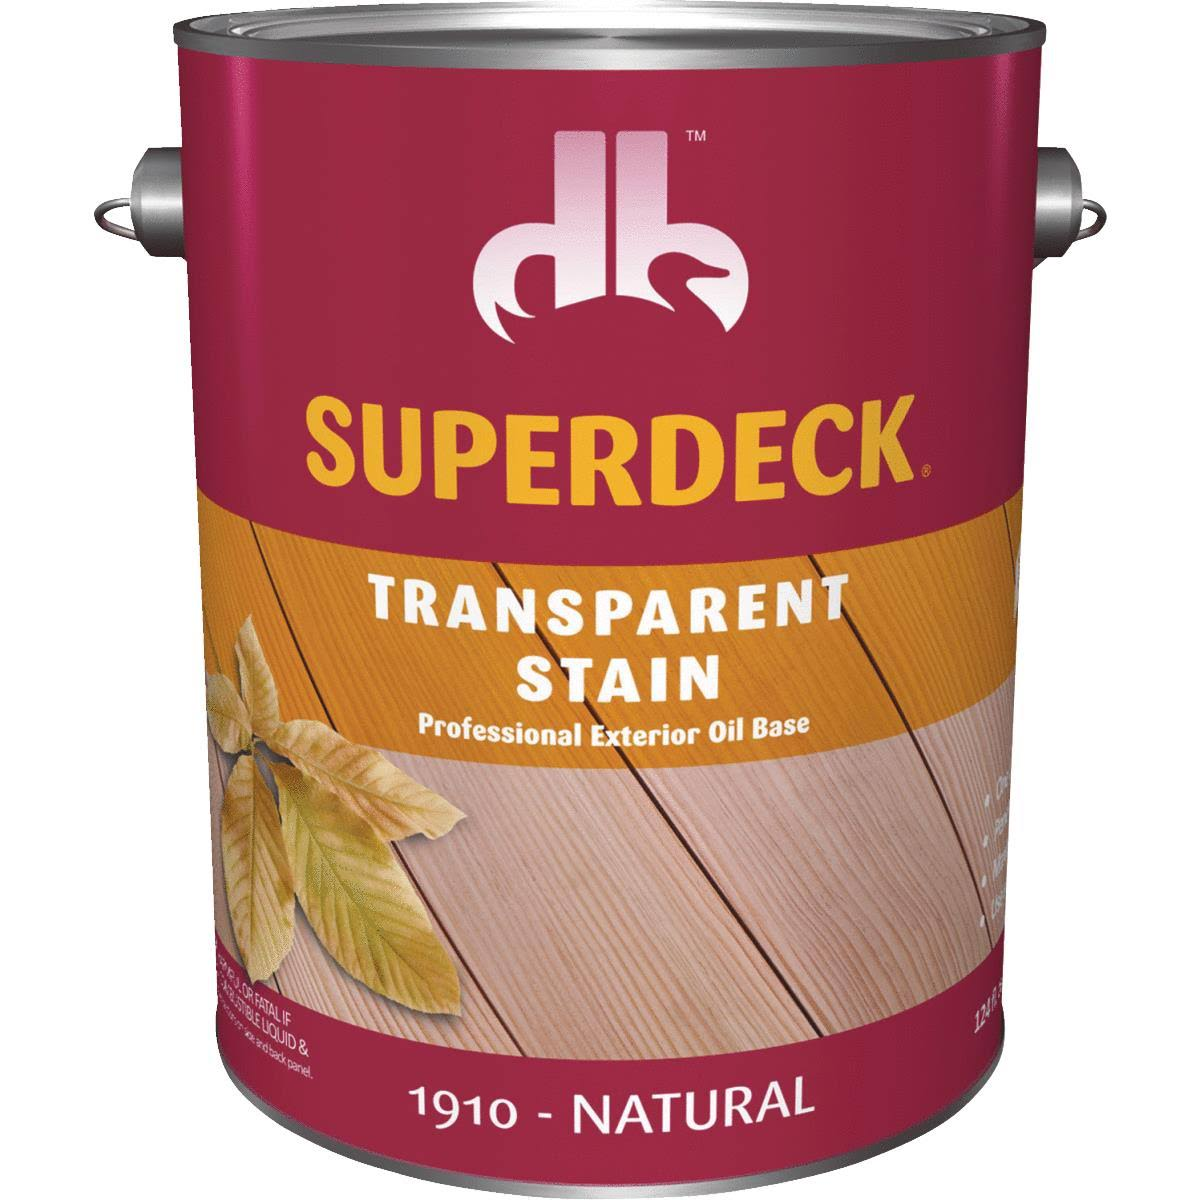 Duckback Products Superdeck Transparent Stain - 1910 Natural